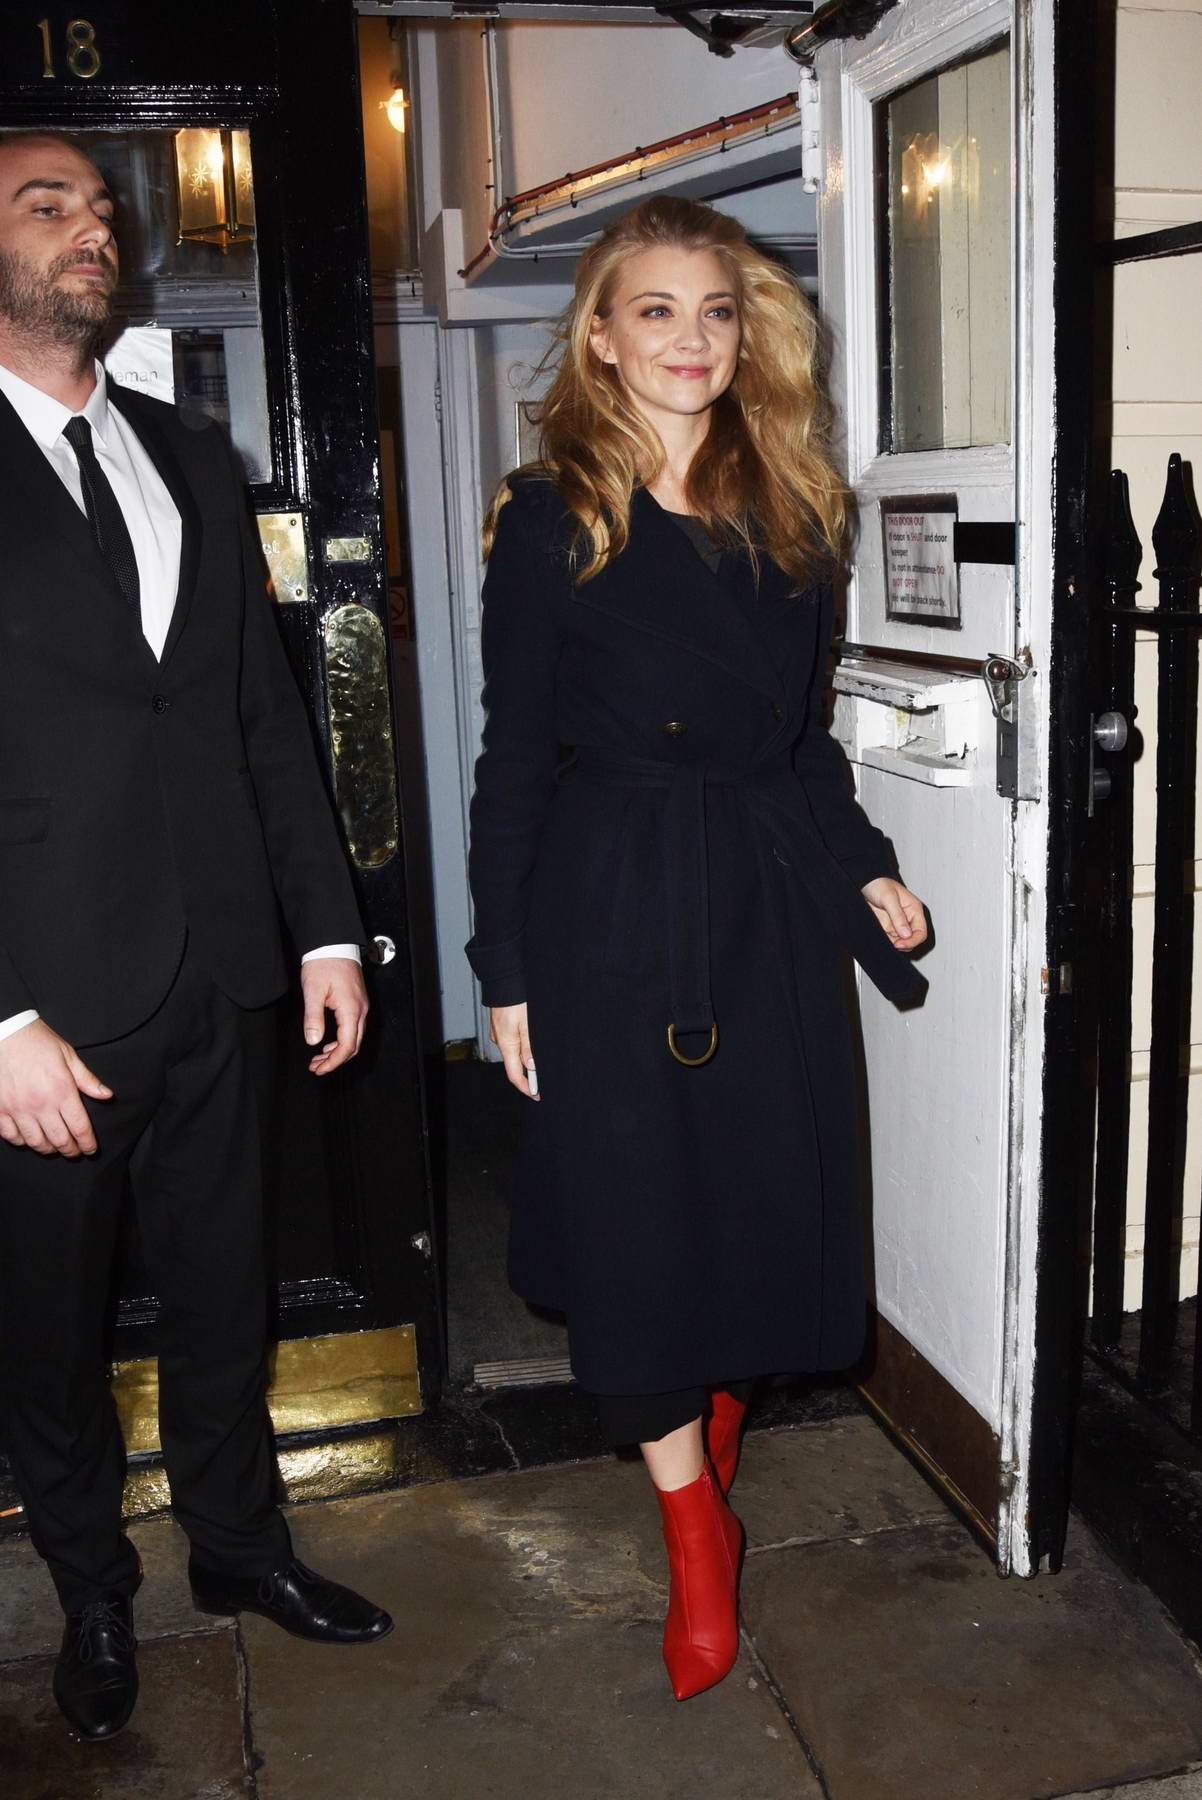 """natalie dormer seen leaving after performing in the play """"Venus in Fur"""" at the Theatre Royal Haymarket in London"""